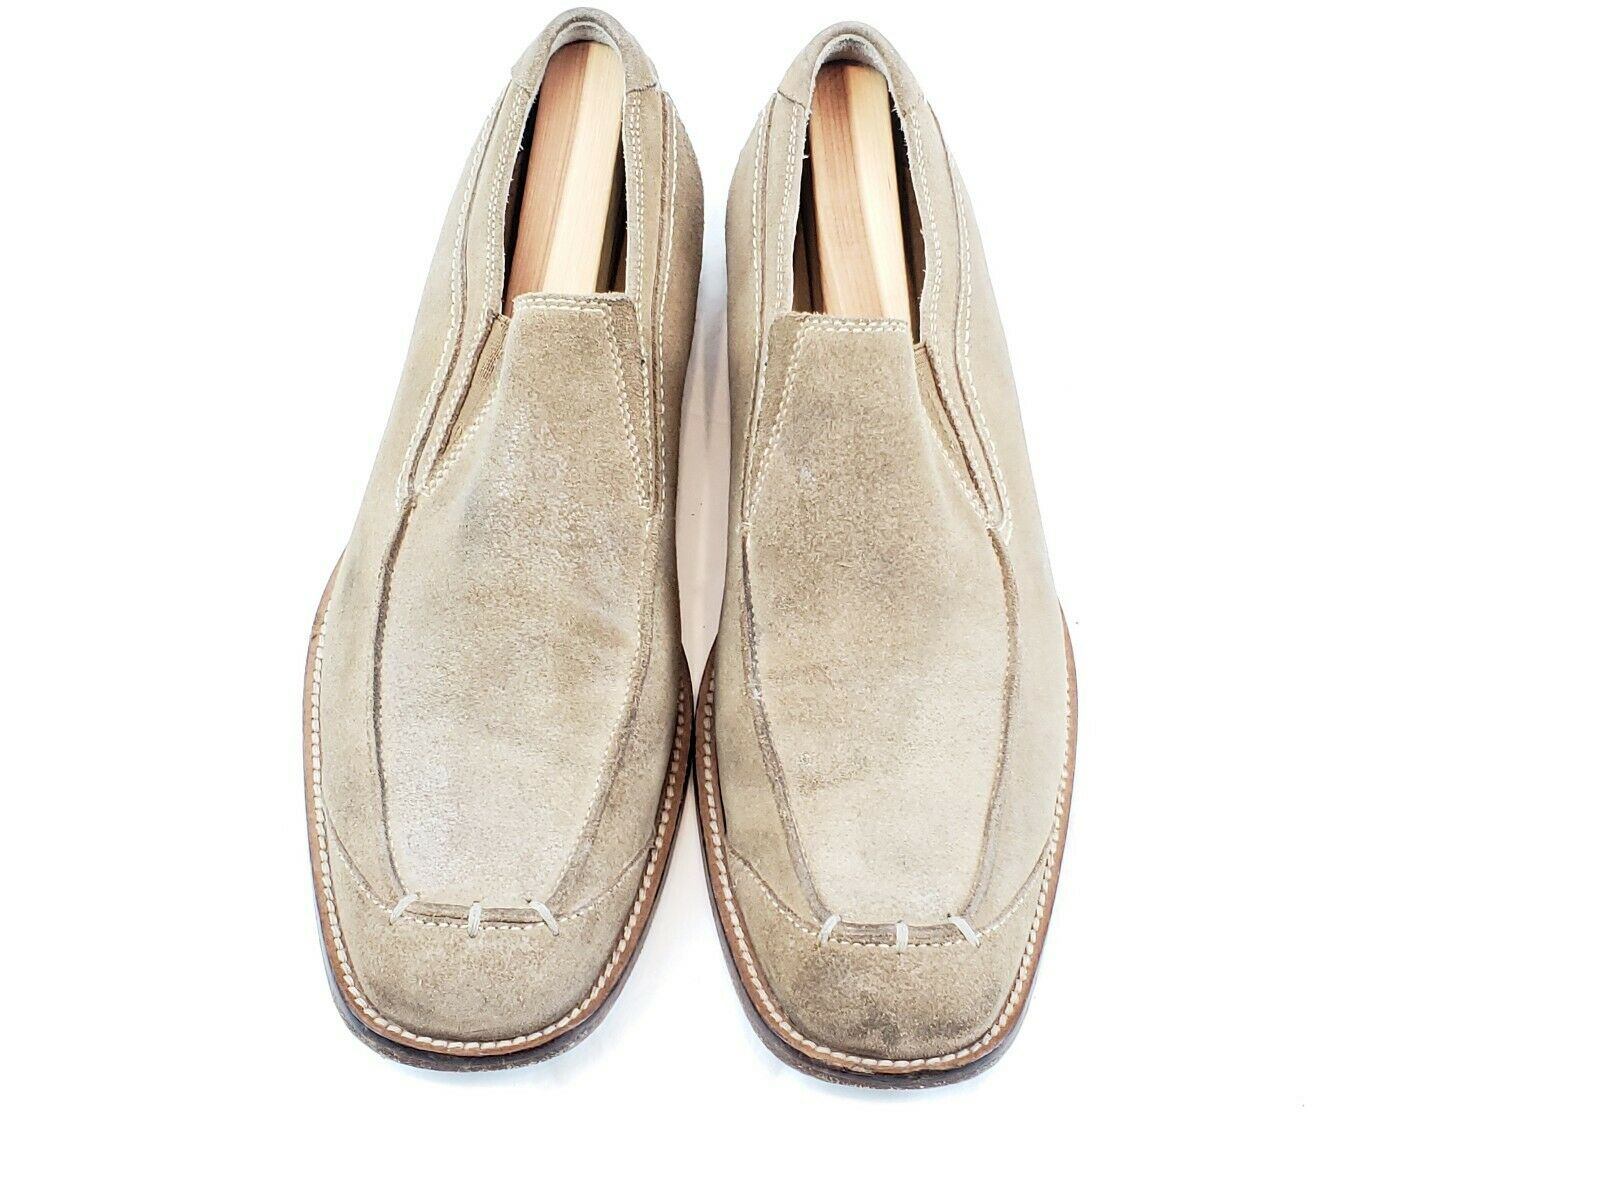 Gordon Rush Dress Loafer Size 10.5 Tan Suede Slip On Dress shoes